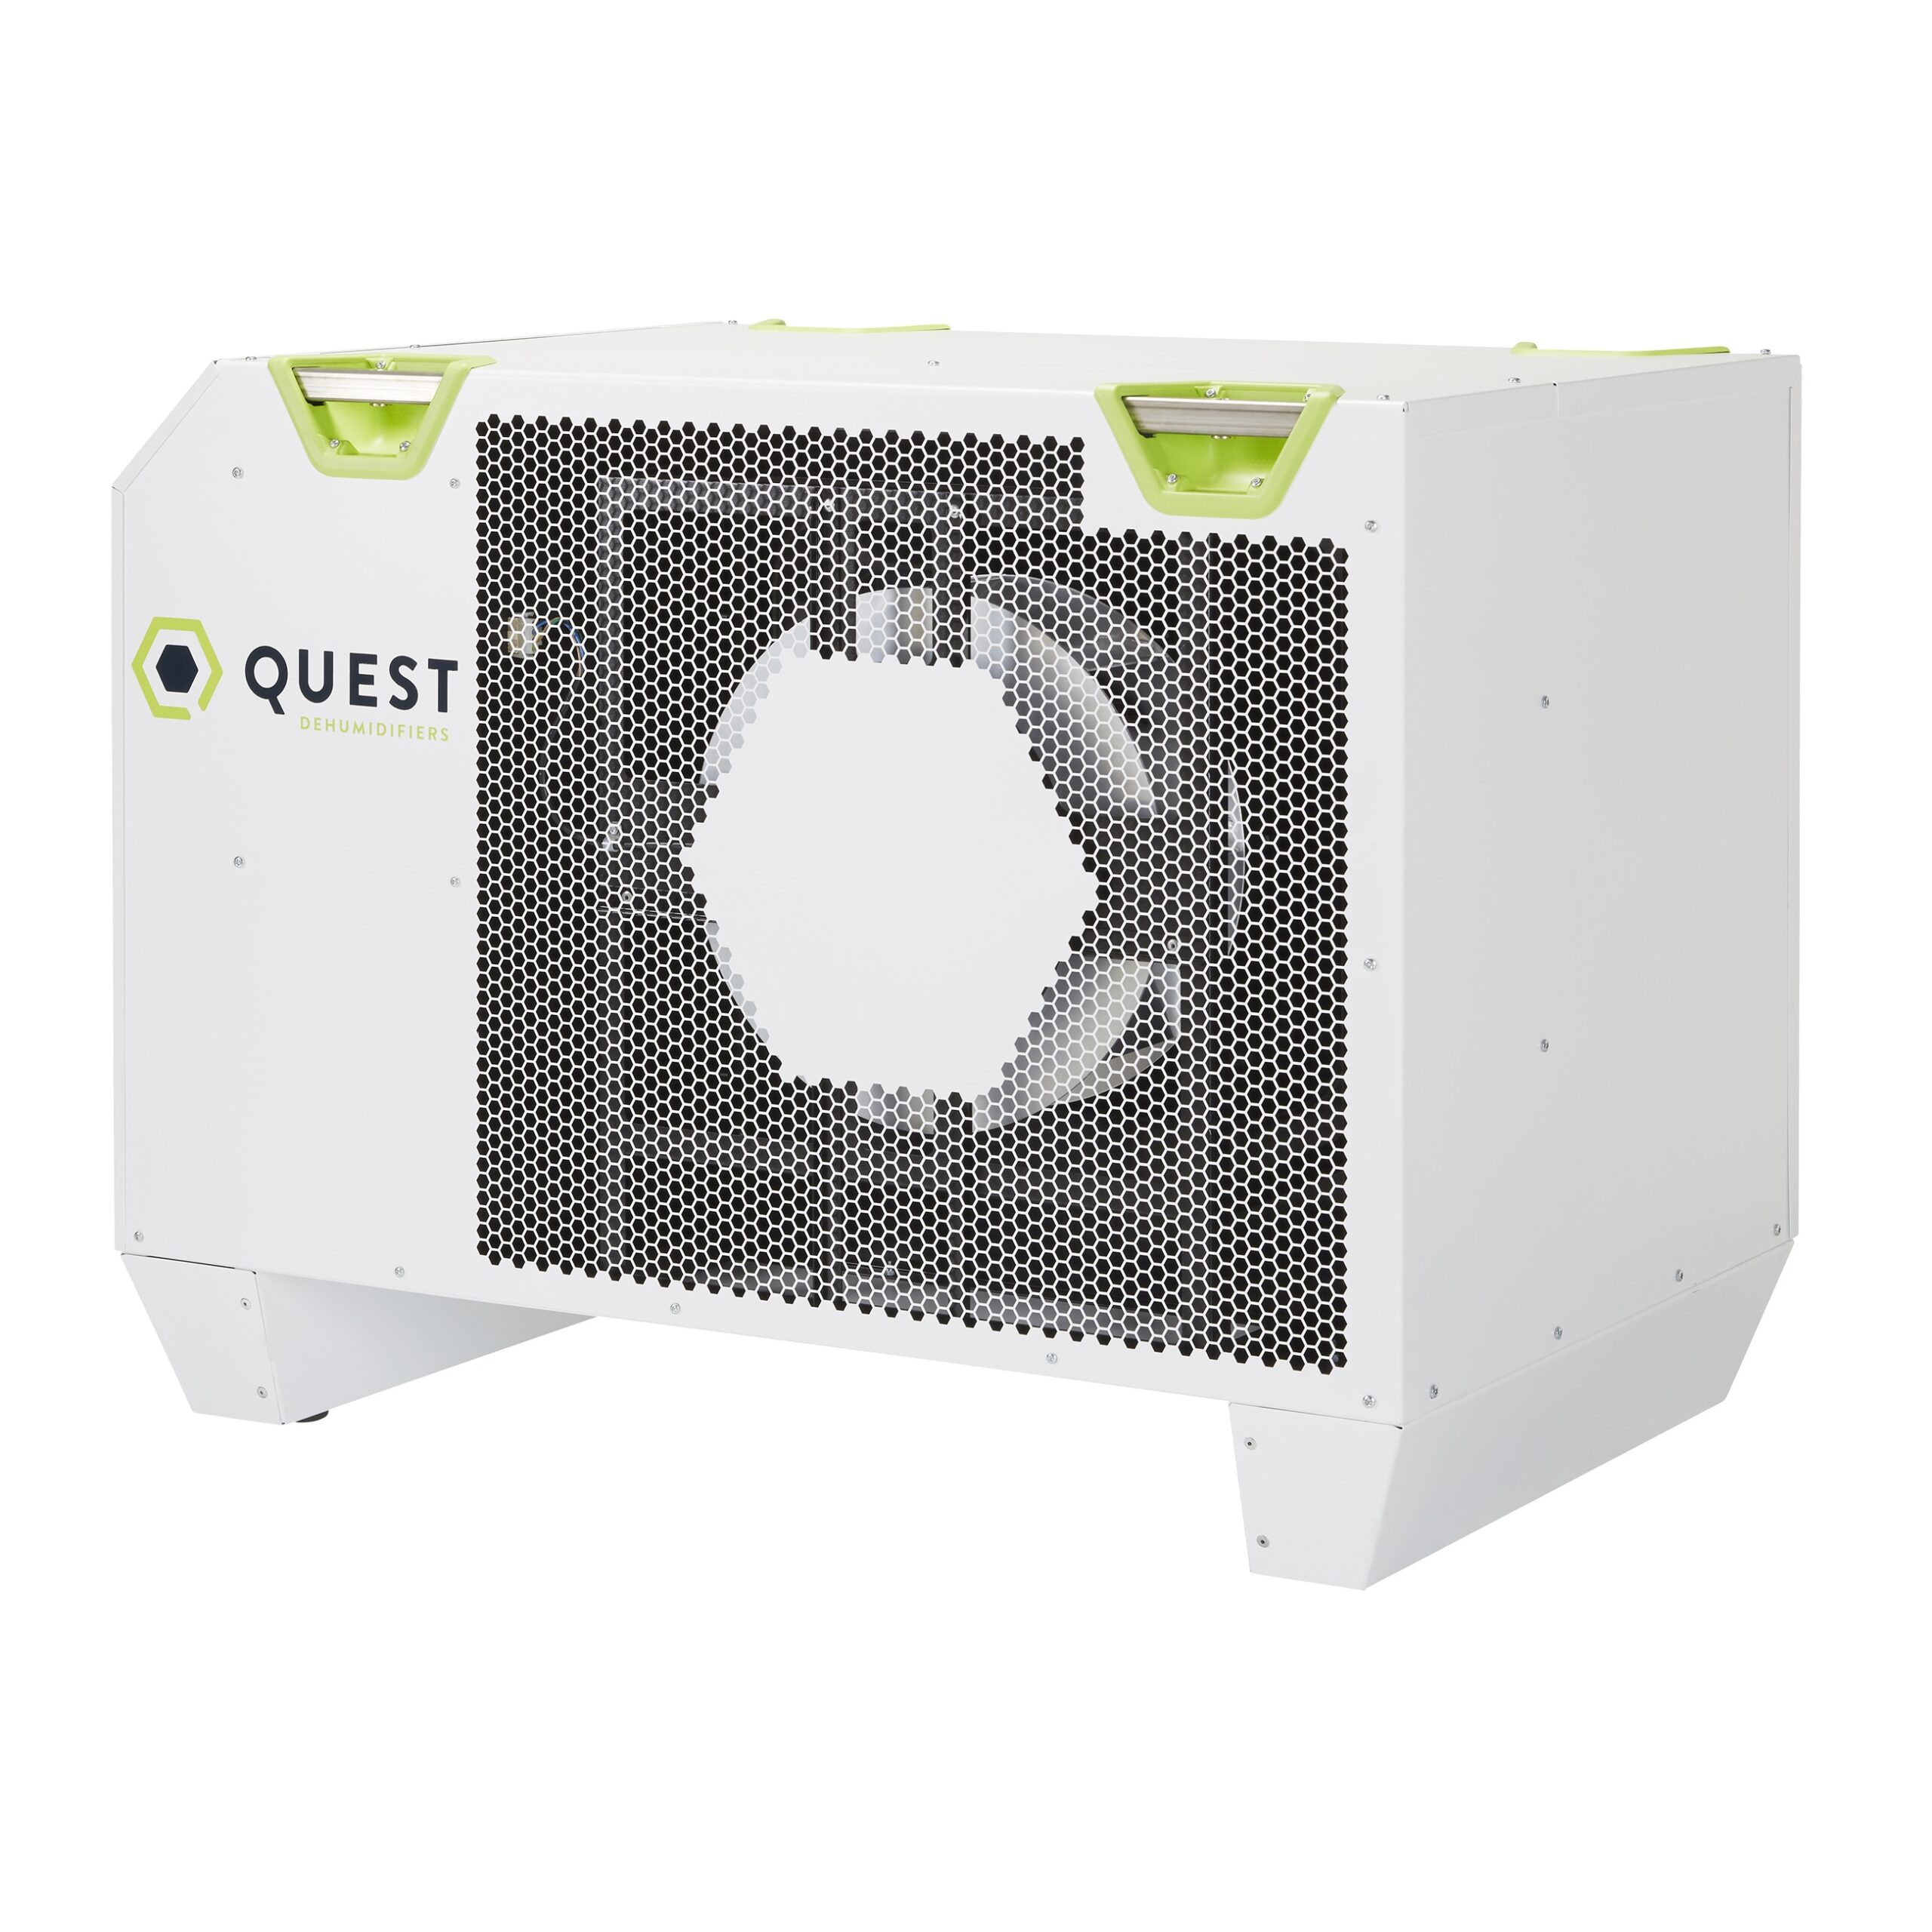 Quest 876 Dehumidifier